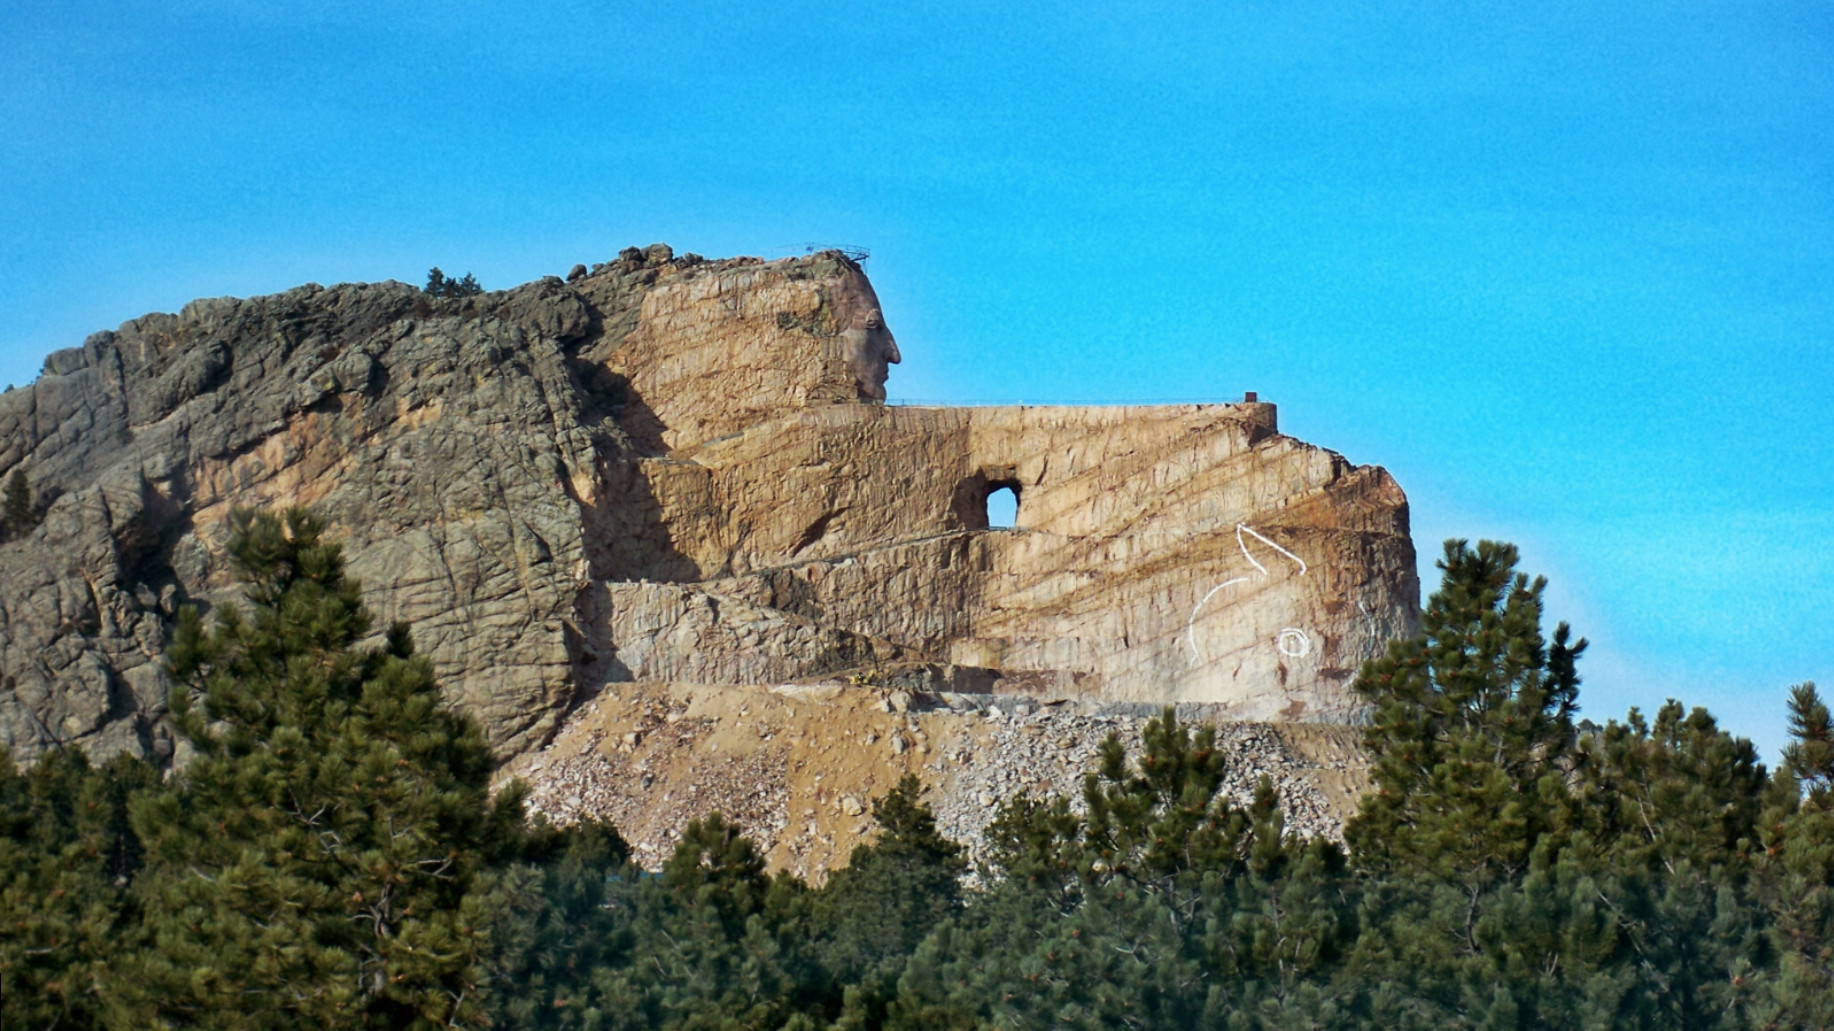 The Crazy Horse Memorial is one of the world's largest sculptural undertakings. A mountain monument memorial of Lakota leader Crazy Horse is under construction on privately held land in the Black Hills in South Dakota, United States.